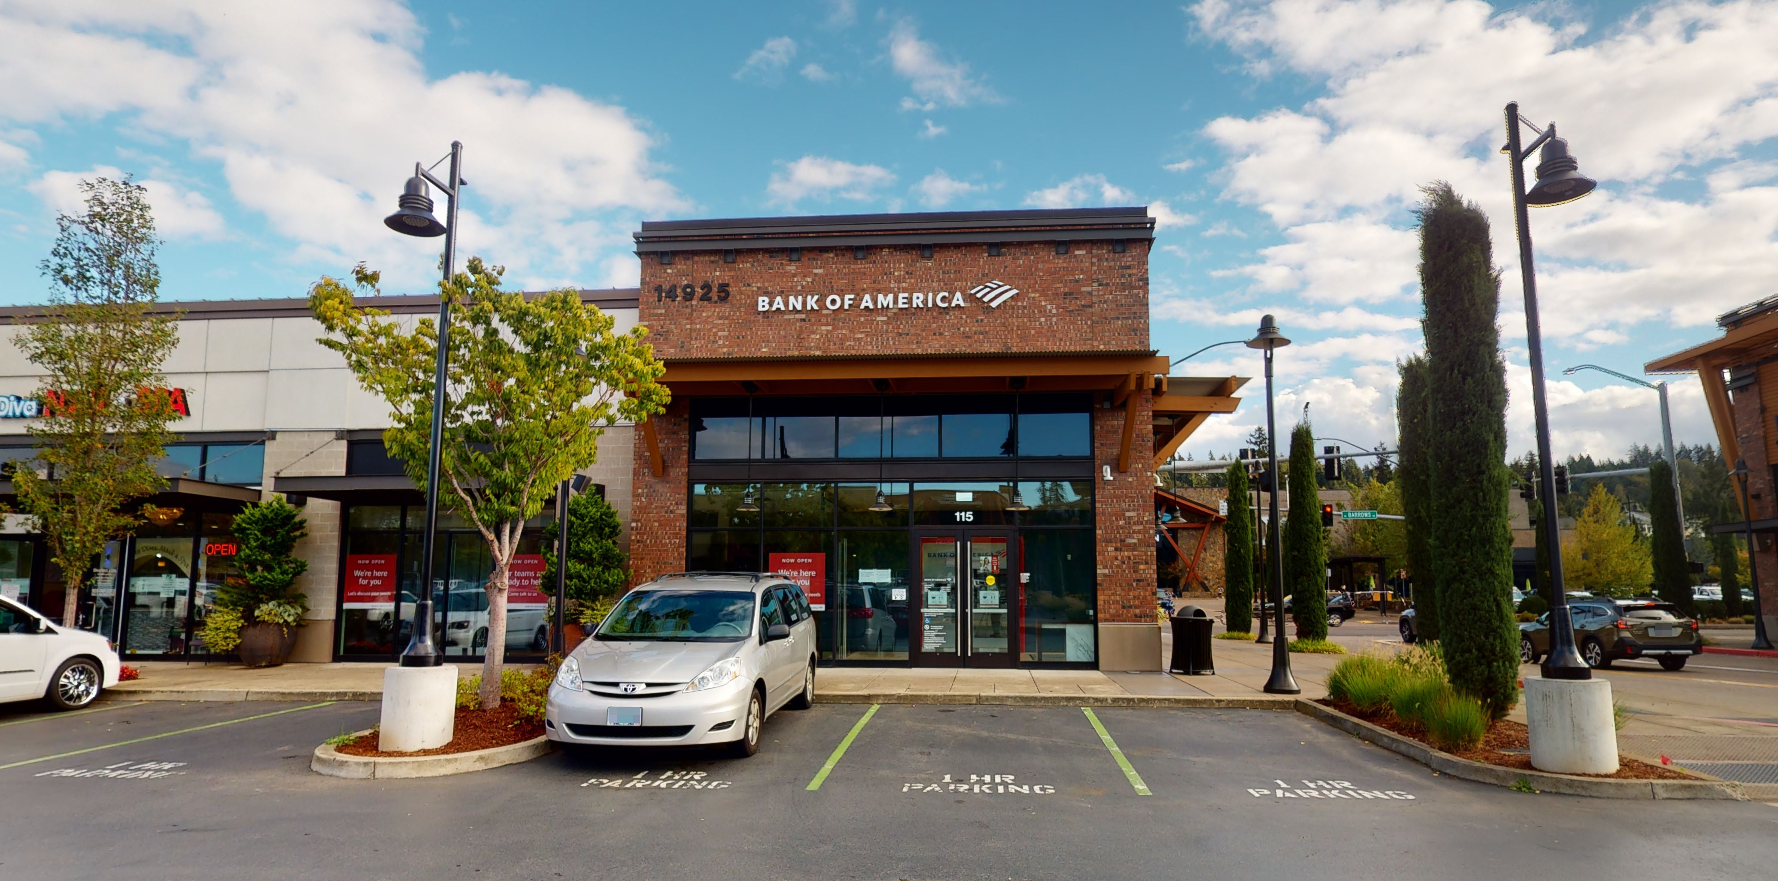 Bank of America financial center with walk-up ATM   14925 SW Barrows Rd STE 115, Beaverton, OR 97007